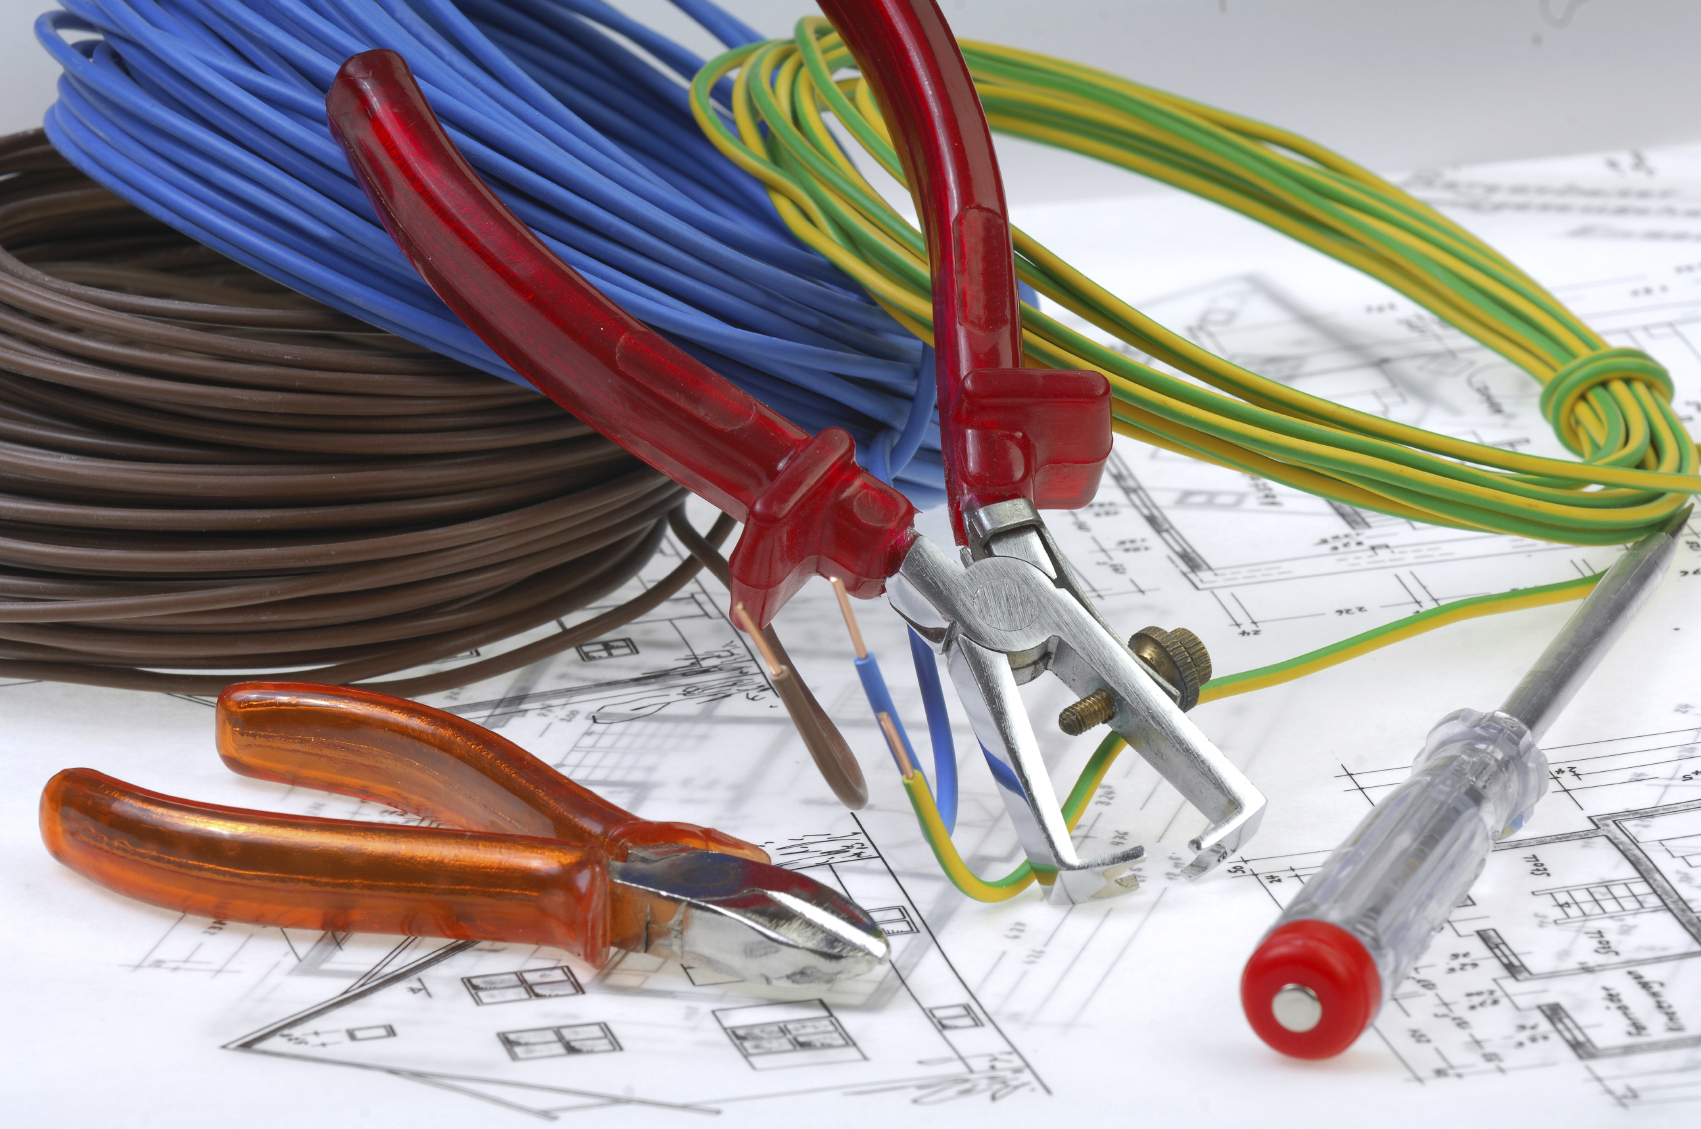 At home electrical projects